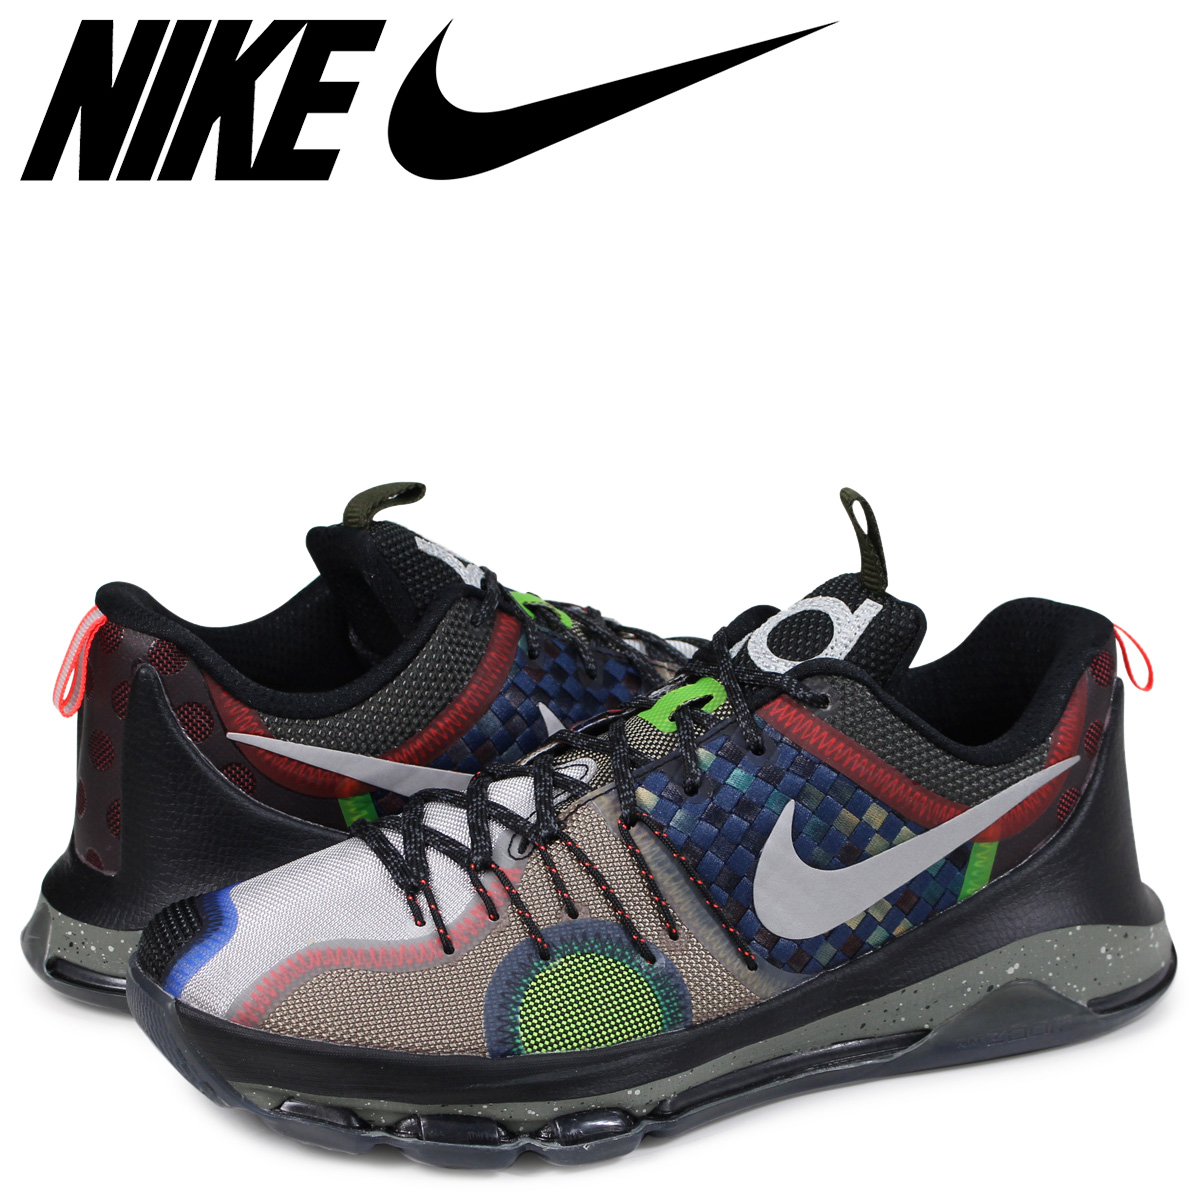 best authentic 2f5c1 c6da5 NIKE SE EP WHAT THE Nike KD 8 sneakers men 845,895-999 Kevin Durant black  ...